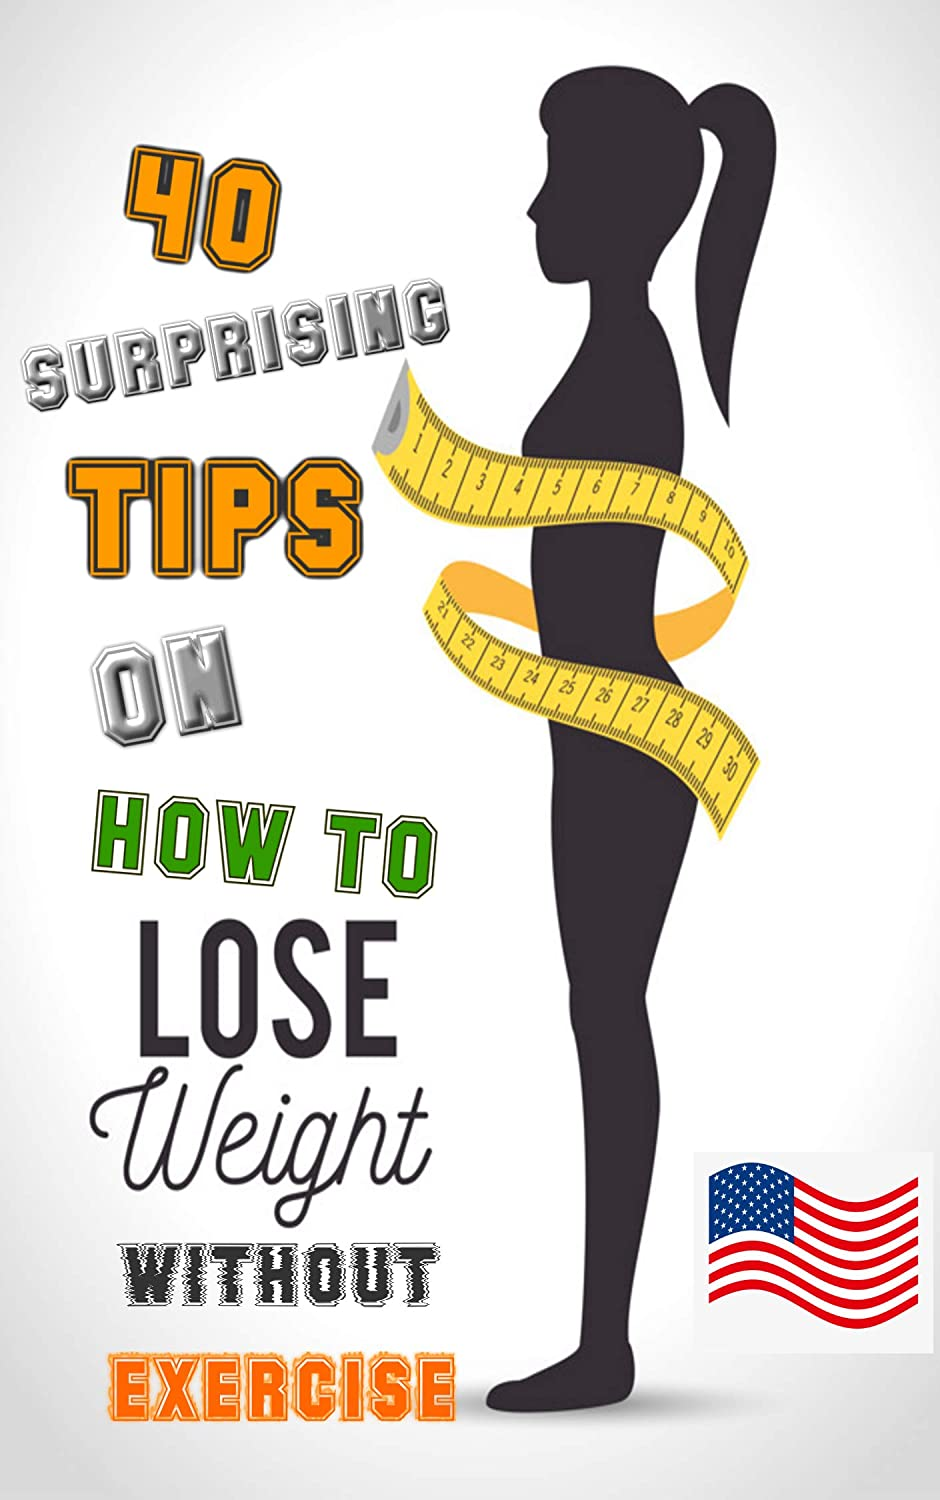 How To Lose Weight Without Exercise 40 Surprising Ways To Lose Weight Without Exercise Ebook Gregory Mandy Amazon Com Au Kindle Store